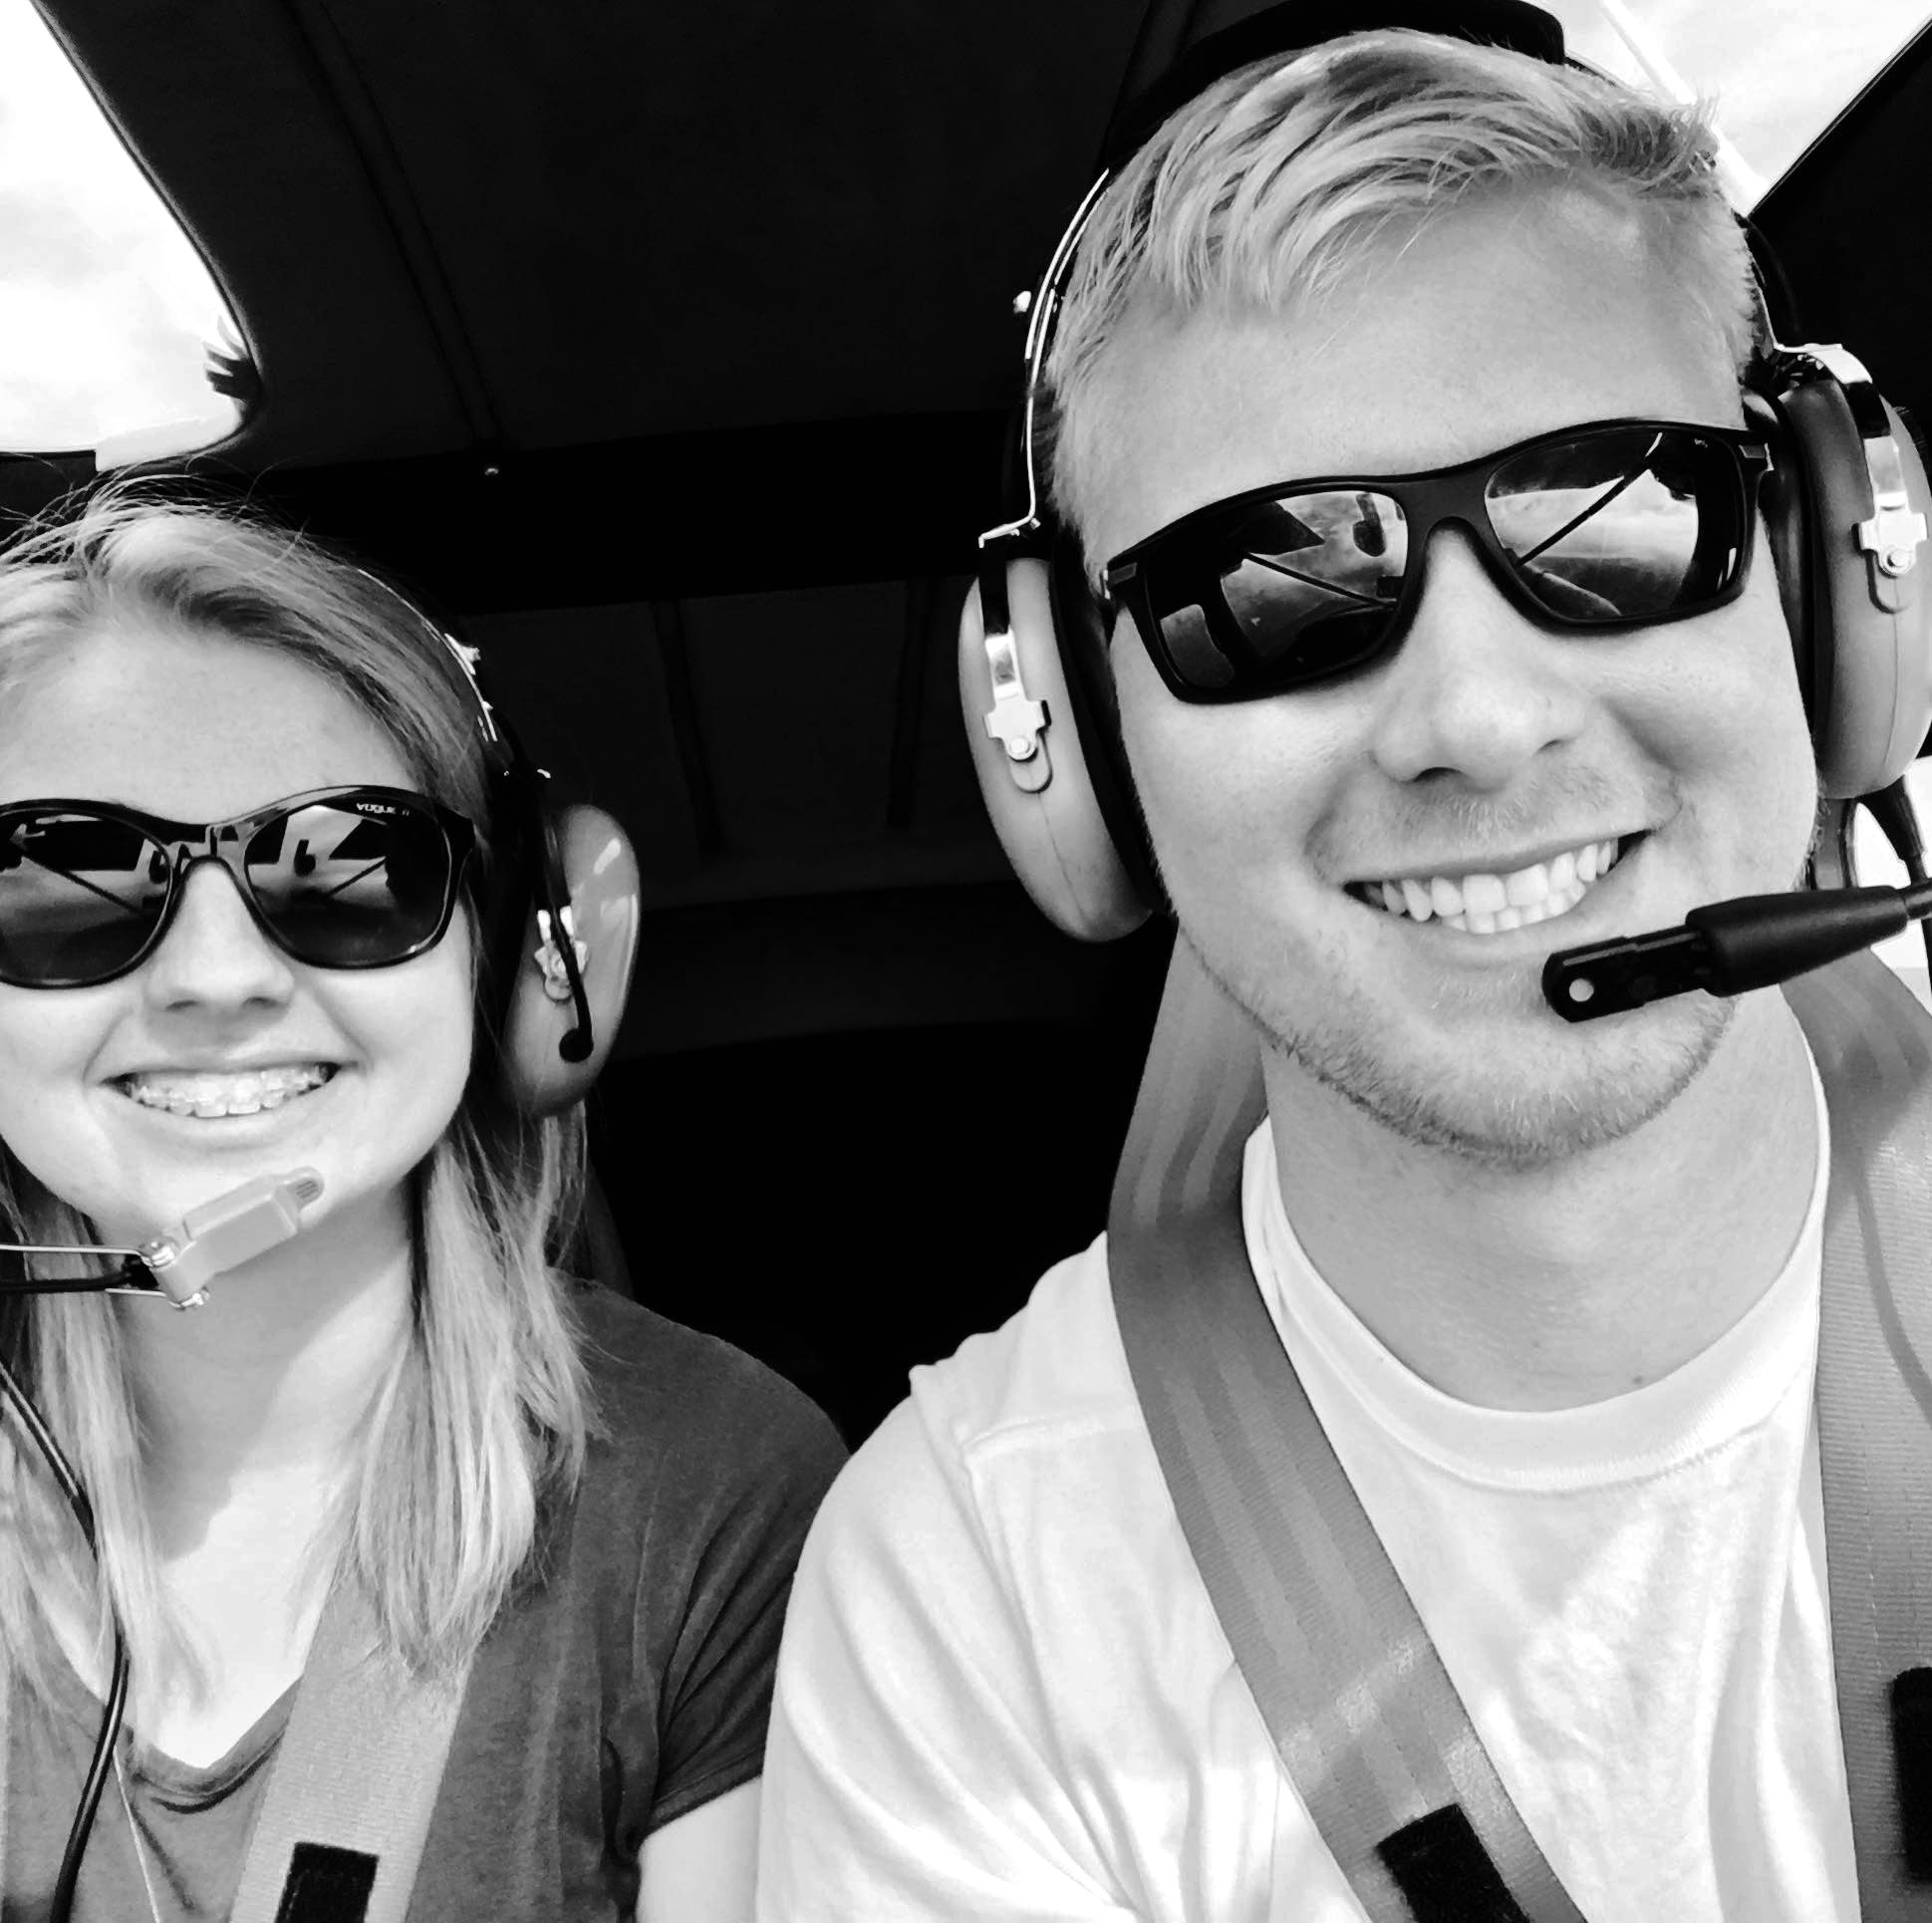 Samantha Sky Hagan and Kyle Fosso hope to fly to all 50 states while producing videos championing the benefit of general aviation. Photo courtesy of Kyle Fosso.